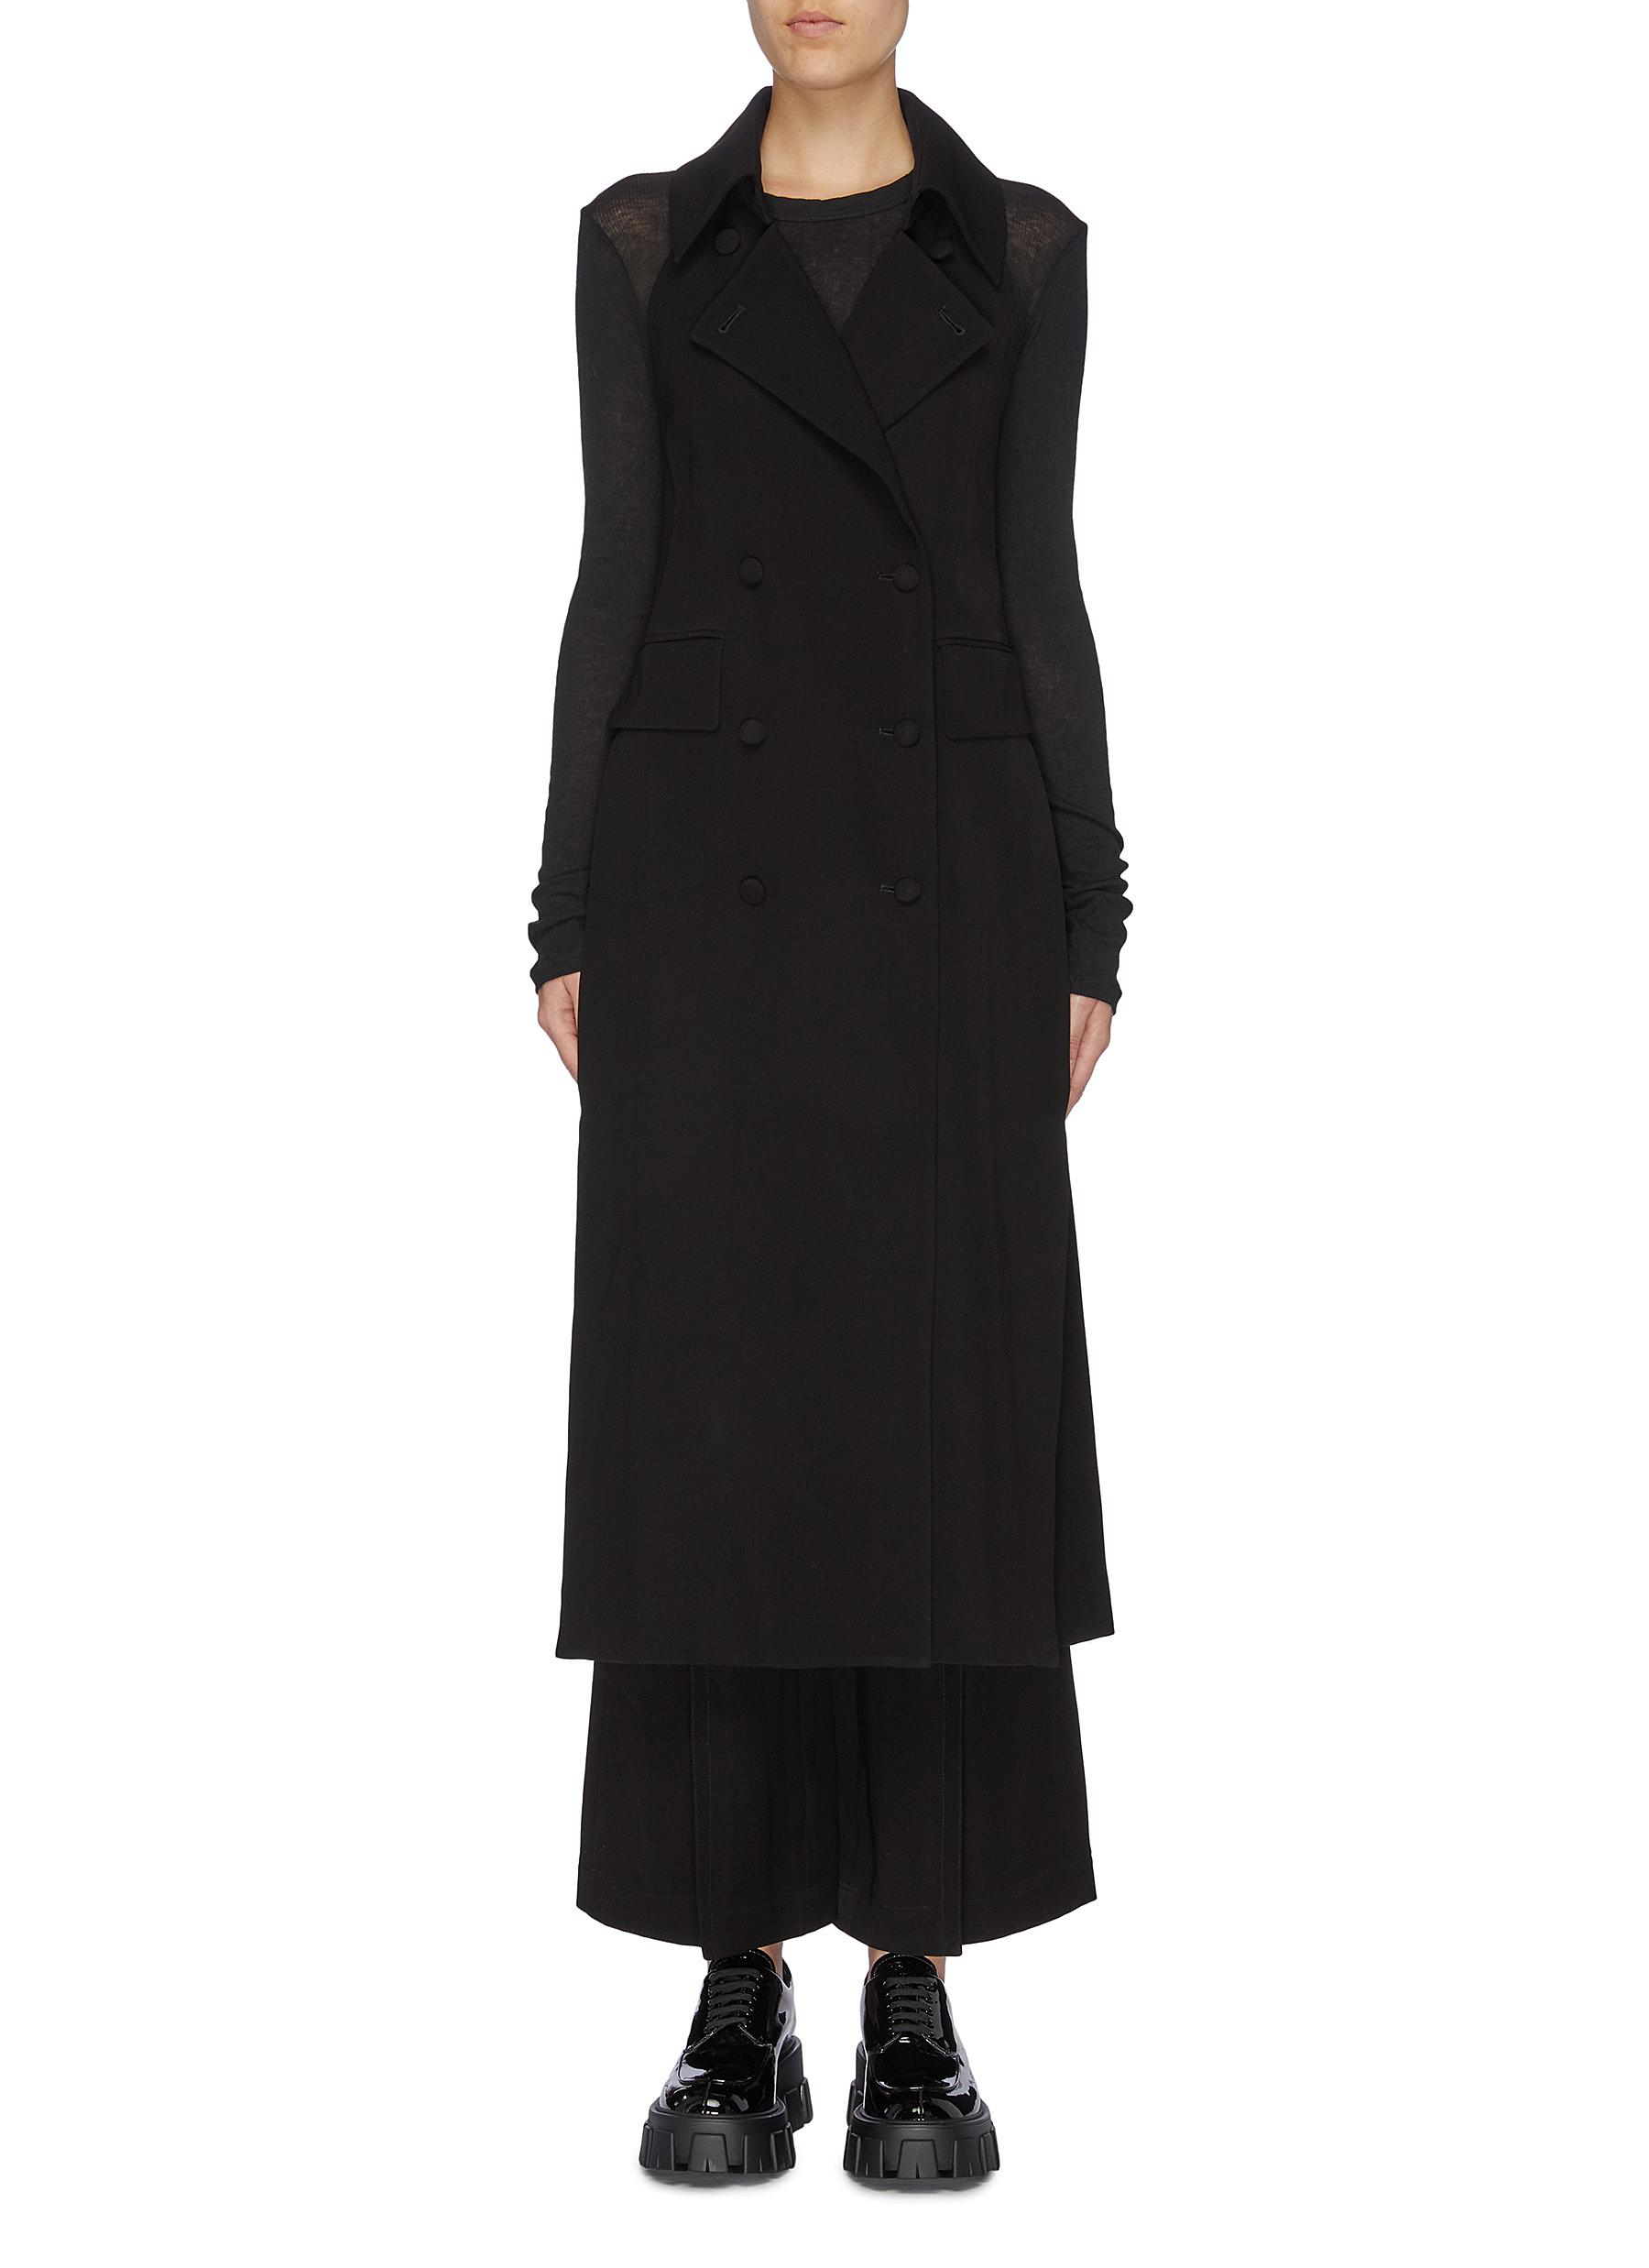 Sleeveless trench coat by Sans Titre